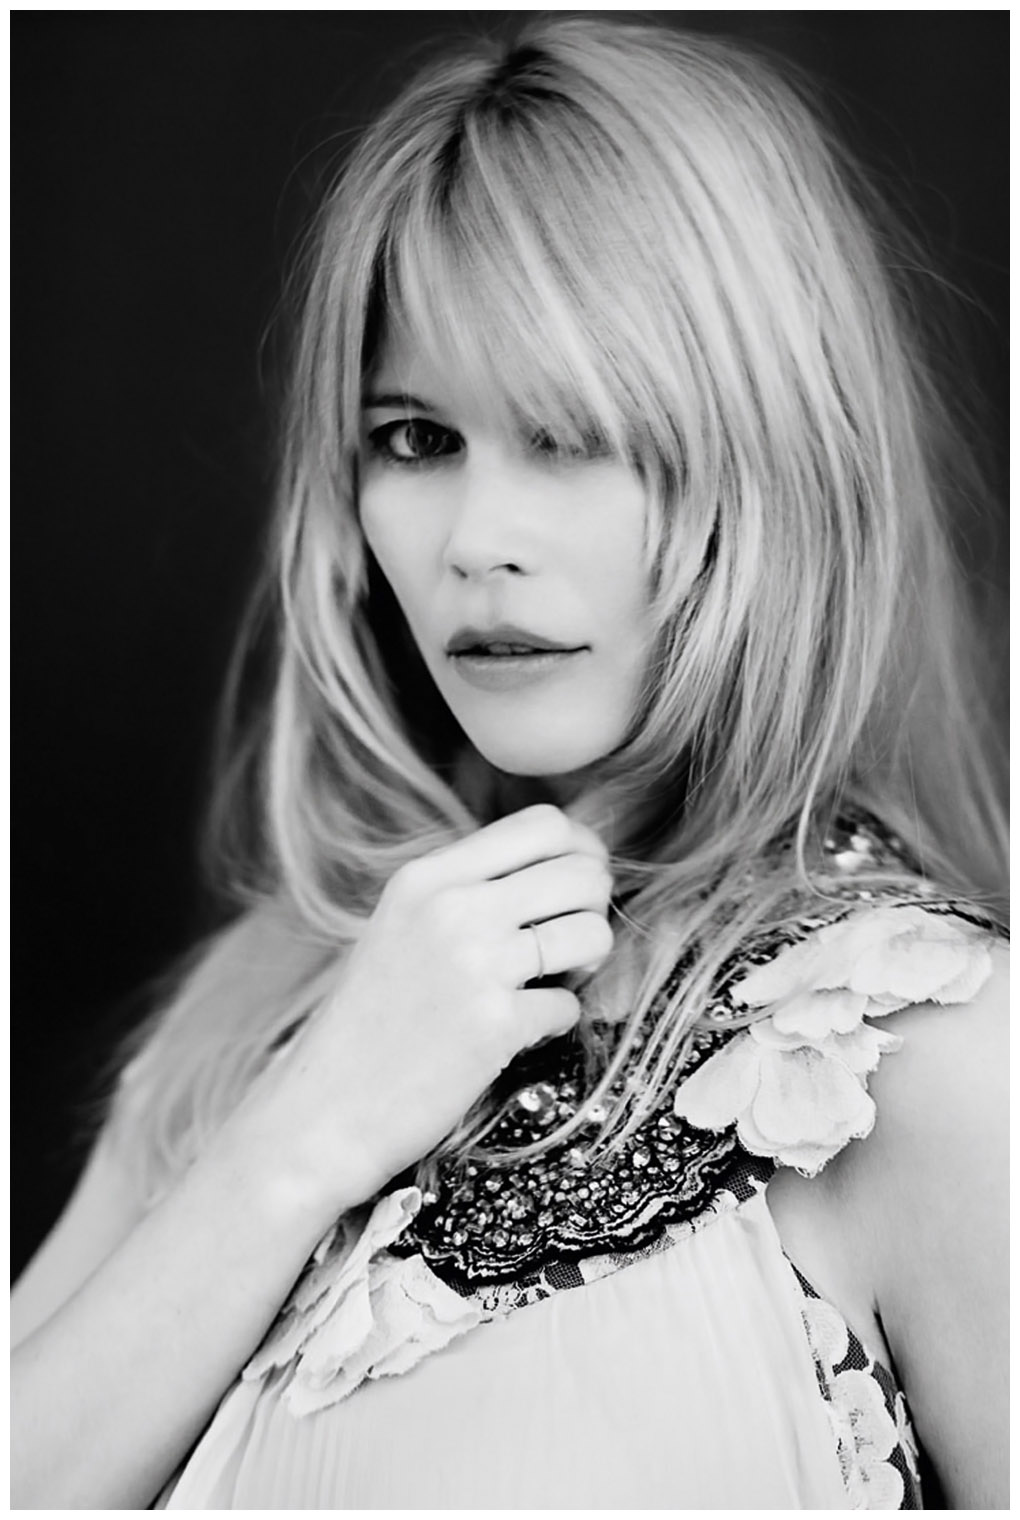 The 47-year old daughter of father Heinz Schiffer and mother Gudrun Schiffer, 180 cm tall Claudia Schiffer in 2017 photo